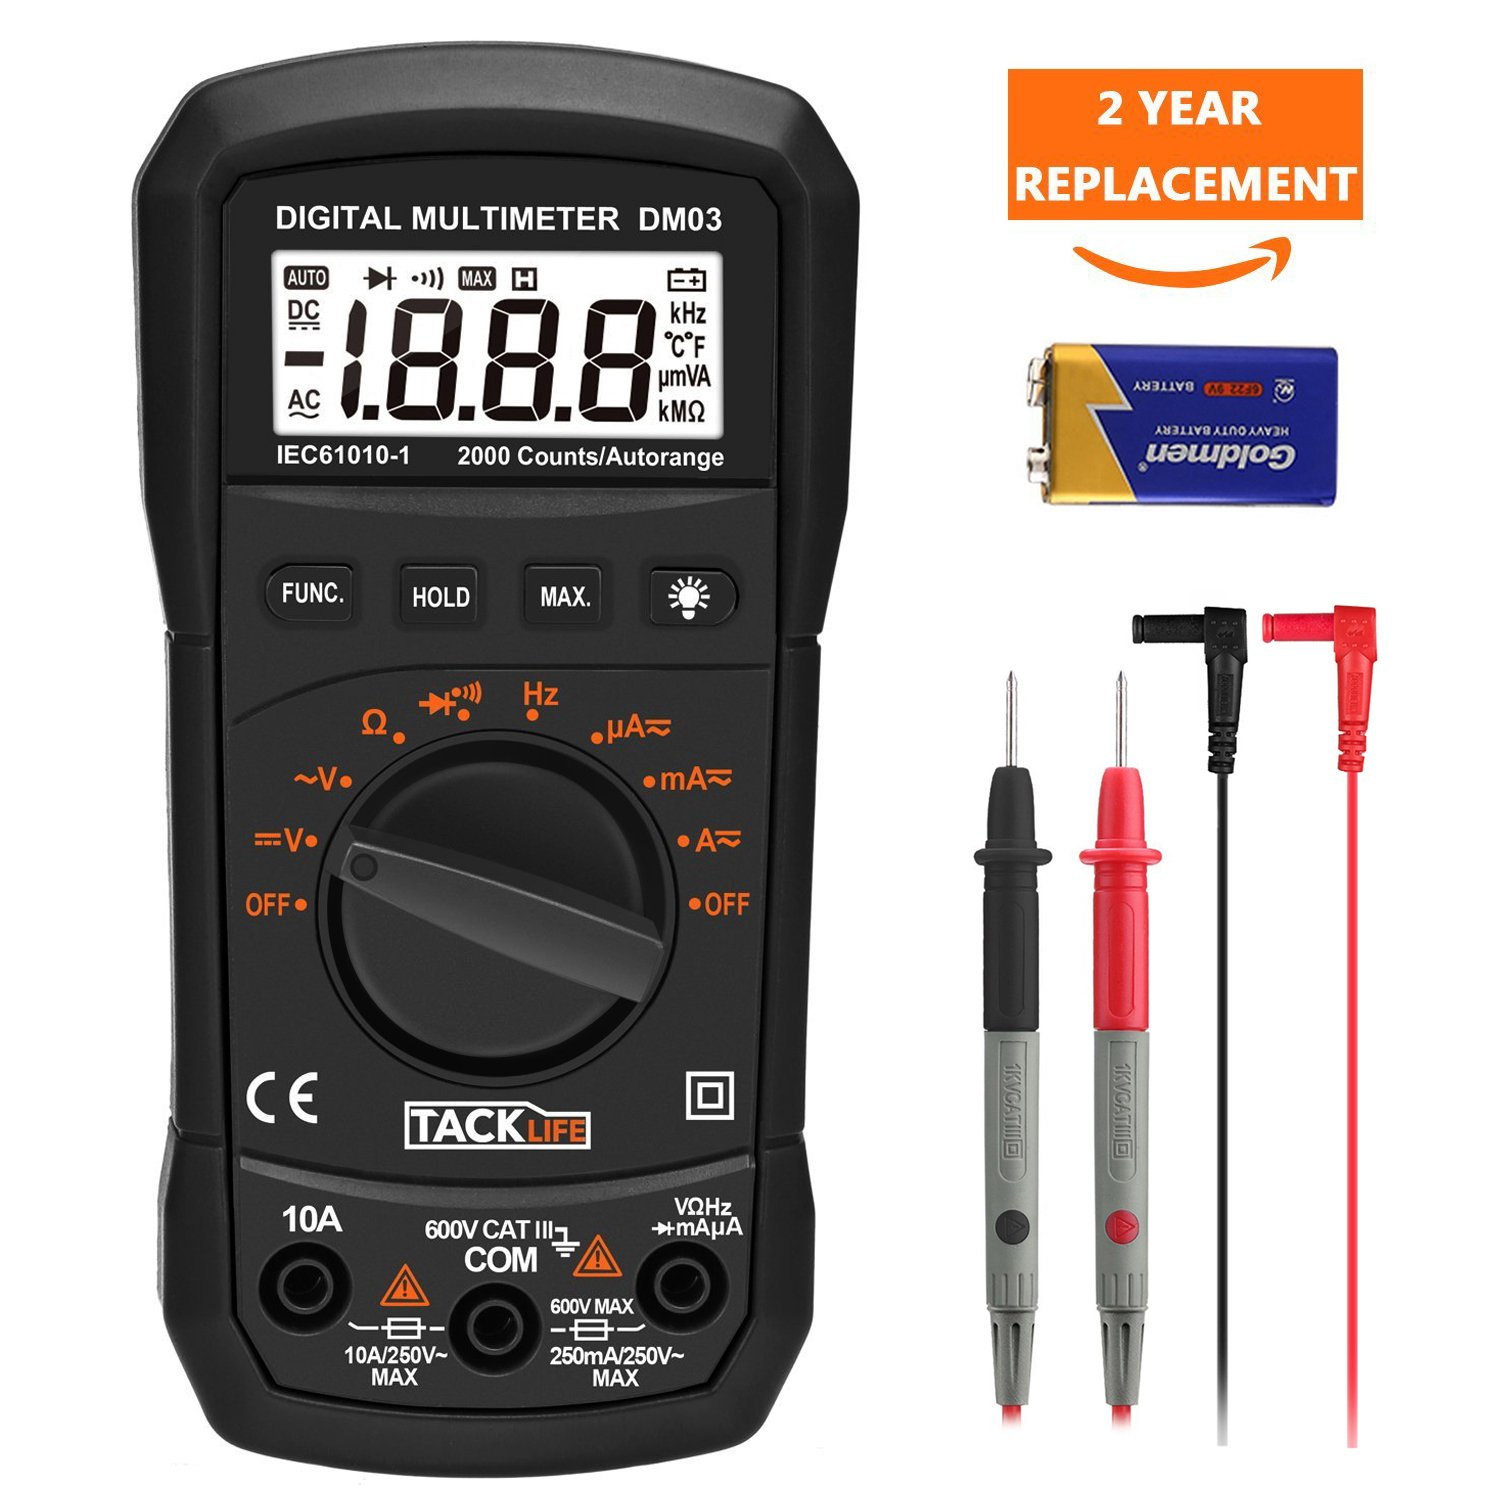 Multimeter, Tacklife DM03 Auto Ranging Digital Multimeter Volt Amp Ohm Digital Multimeter, Diode Electronic Meter, Continuity Digital Tester with Backlit LCD, Max Value Measurement Tools